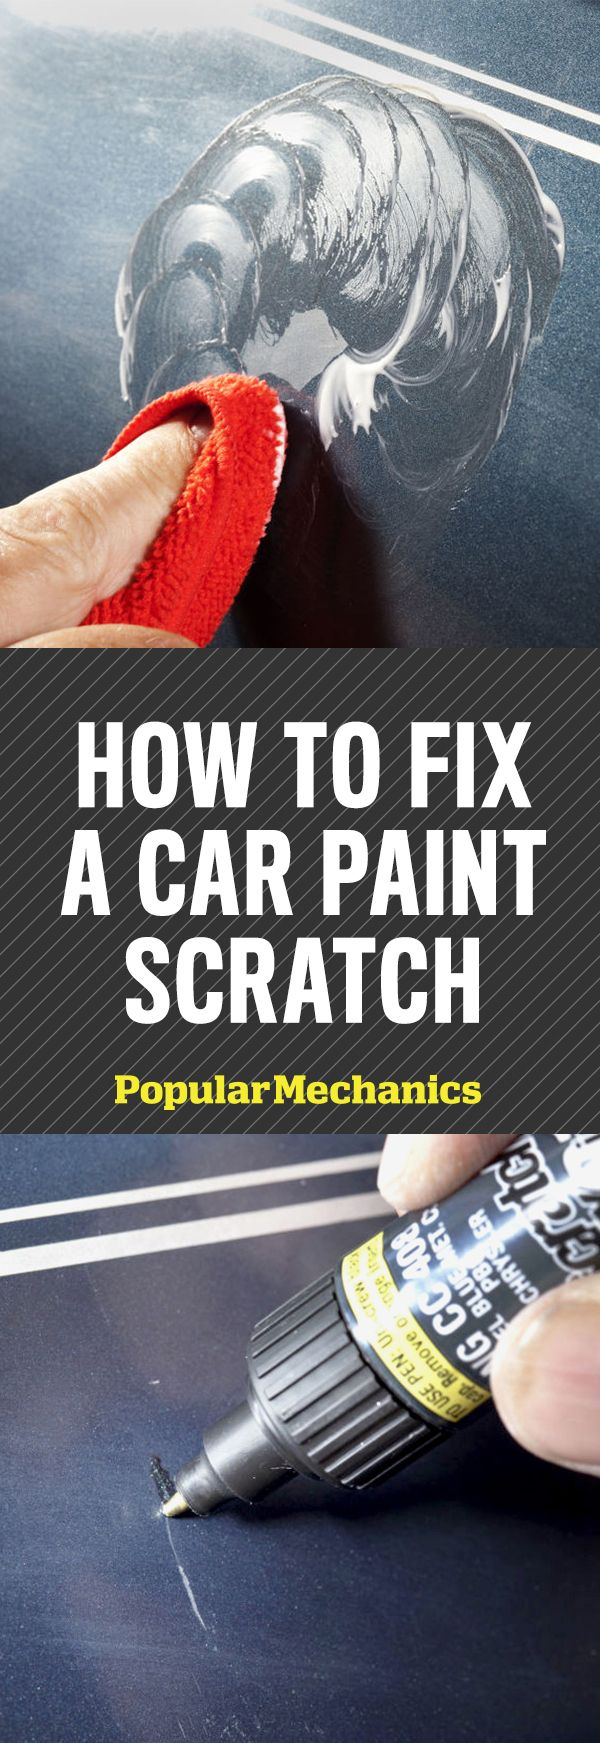 Scratches, chips and other imperfections are just about unavoidable, but a careful repair job can be almost totally invi...